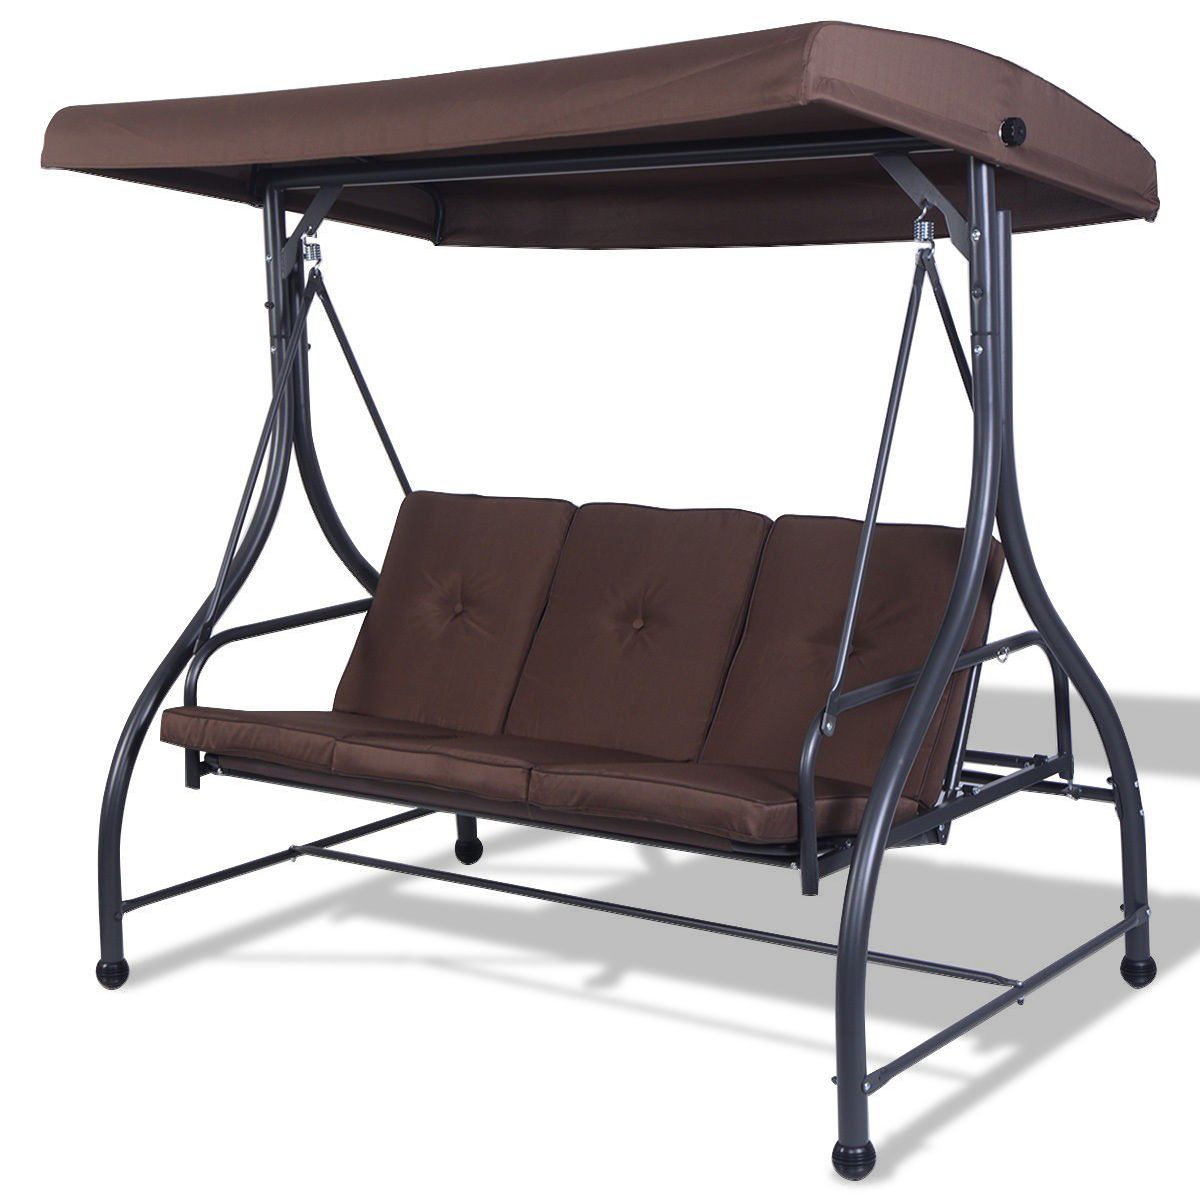 3 Seats Cushioned Porch Swing Chair In 2019 | Porch Swing Within Patio Loveseat Canopy Hammock Porch Swings With Stand (Image 2 of 25)